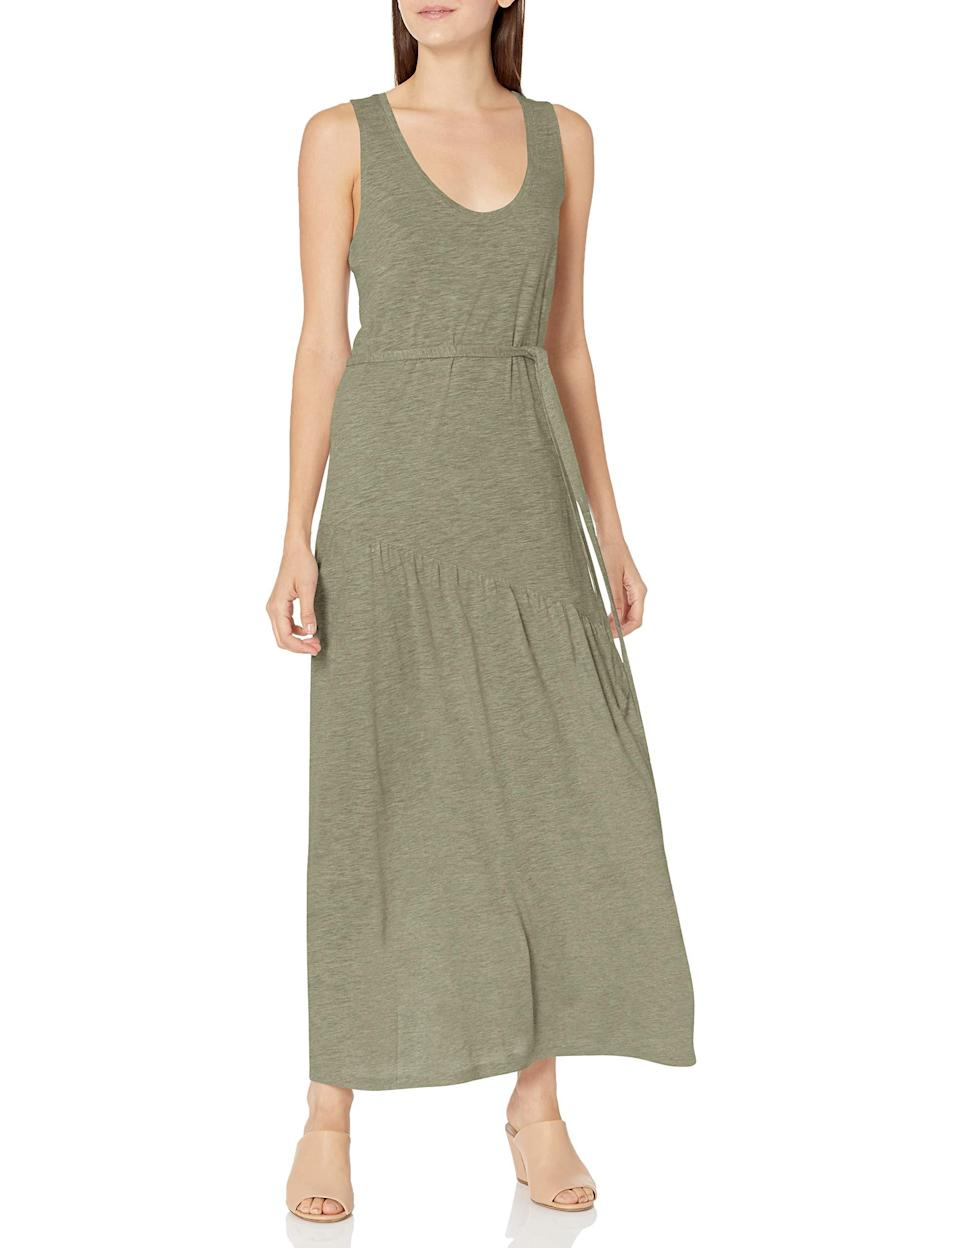 """<br><br><strong>Lucky Brand</strong> Eliza Belted Maxi Dress, $, available at <a href=""""https://amzn.to/3vTLFbM"""" rel=""""nofollow noopener"""" target=""""_blank"""" data-ylk=""""slk:Amazon"""" class=""""link rapid-noclick-resp"""">Amazon</a>"""